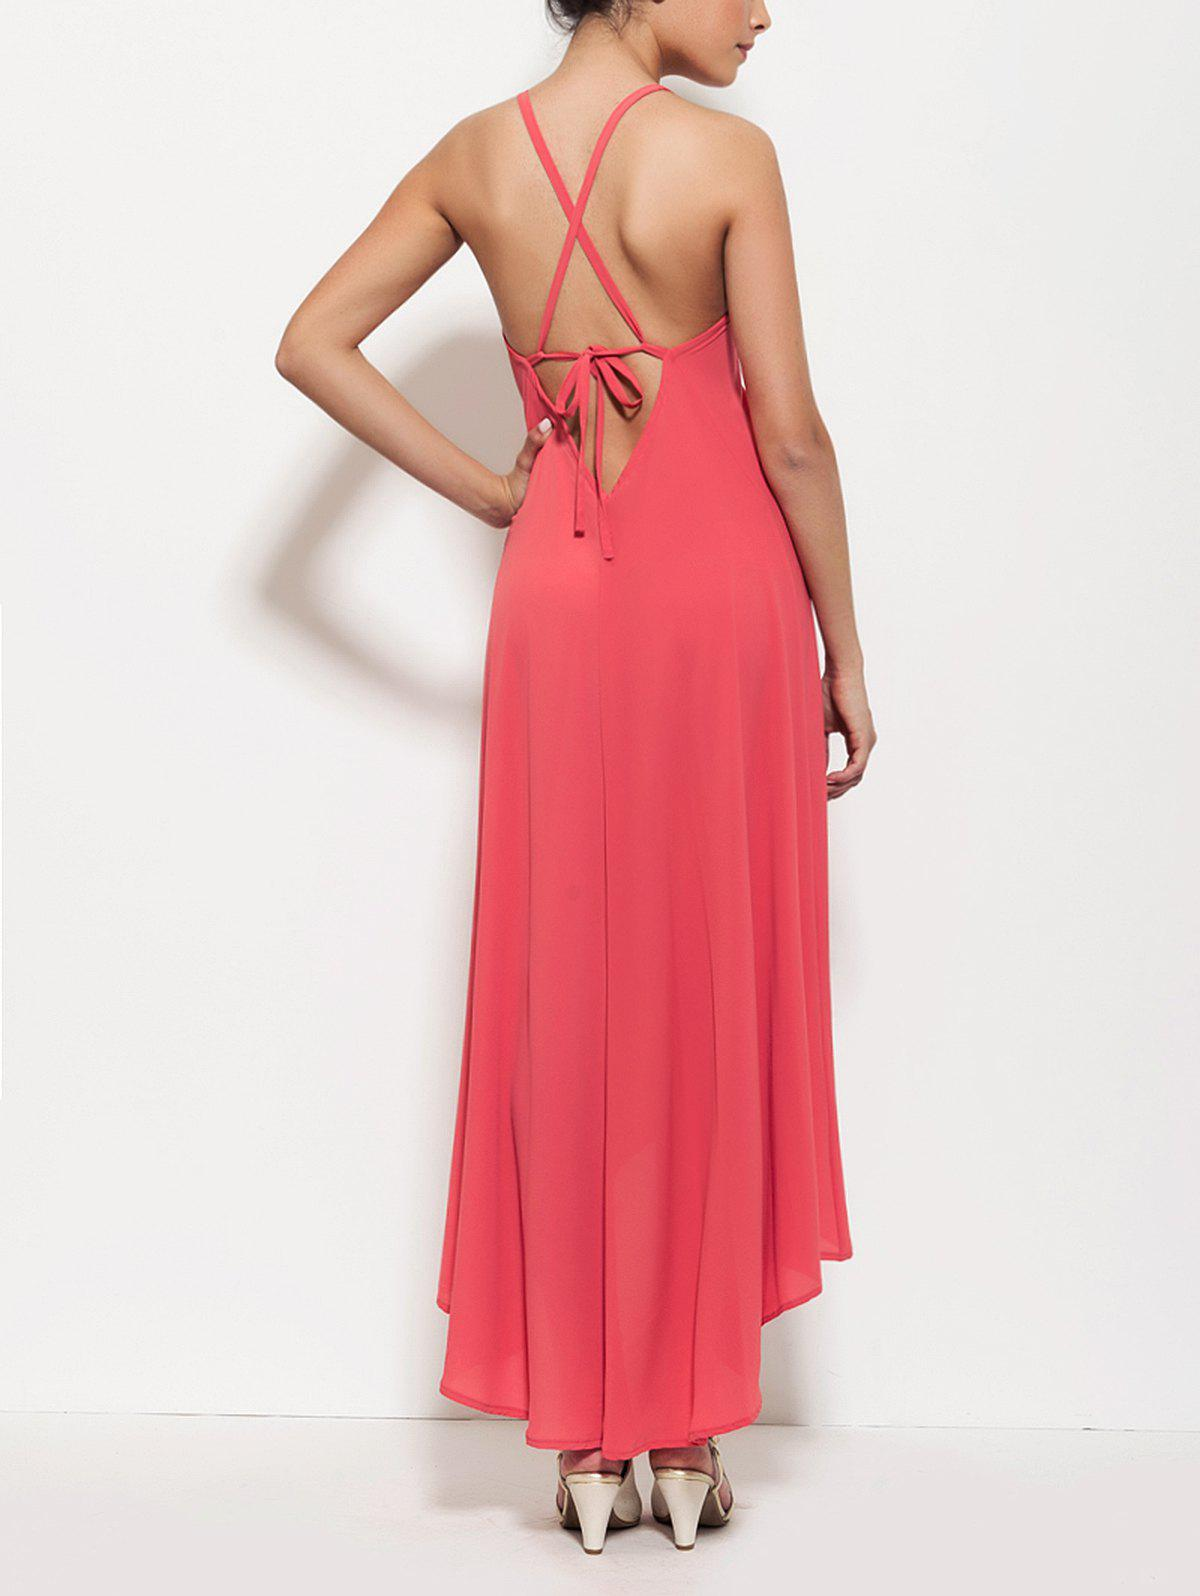 Spaghetti Strap High Low Lace-Up Backless Maxi Dress For Women